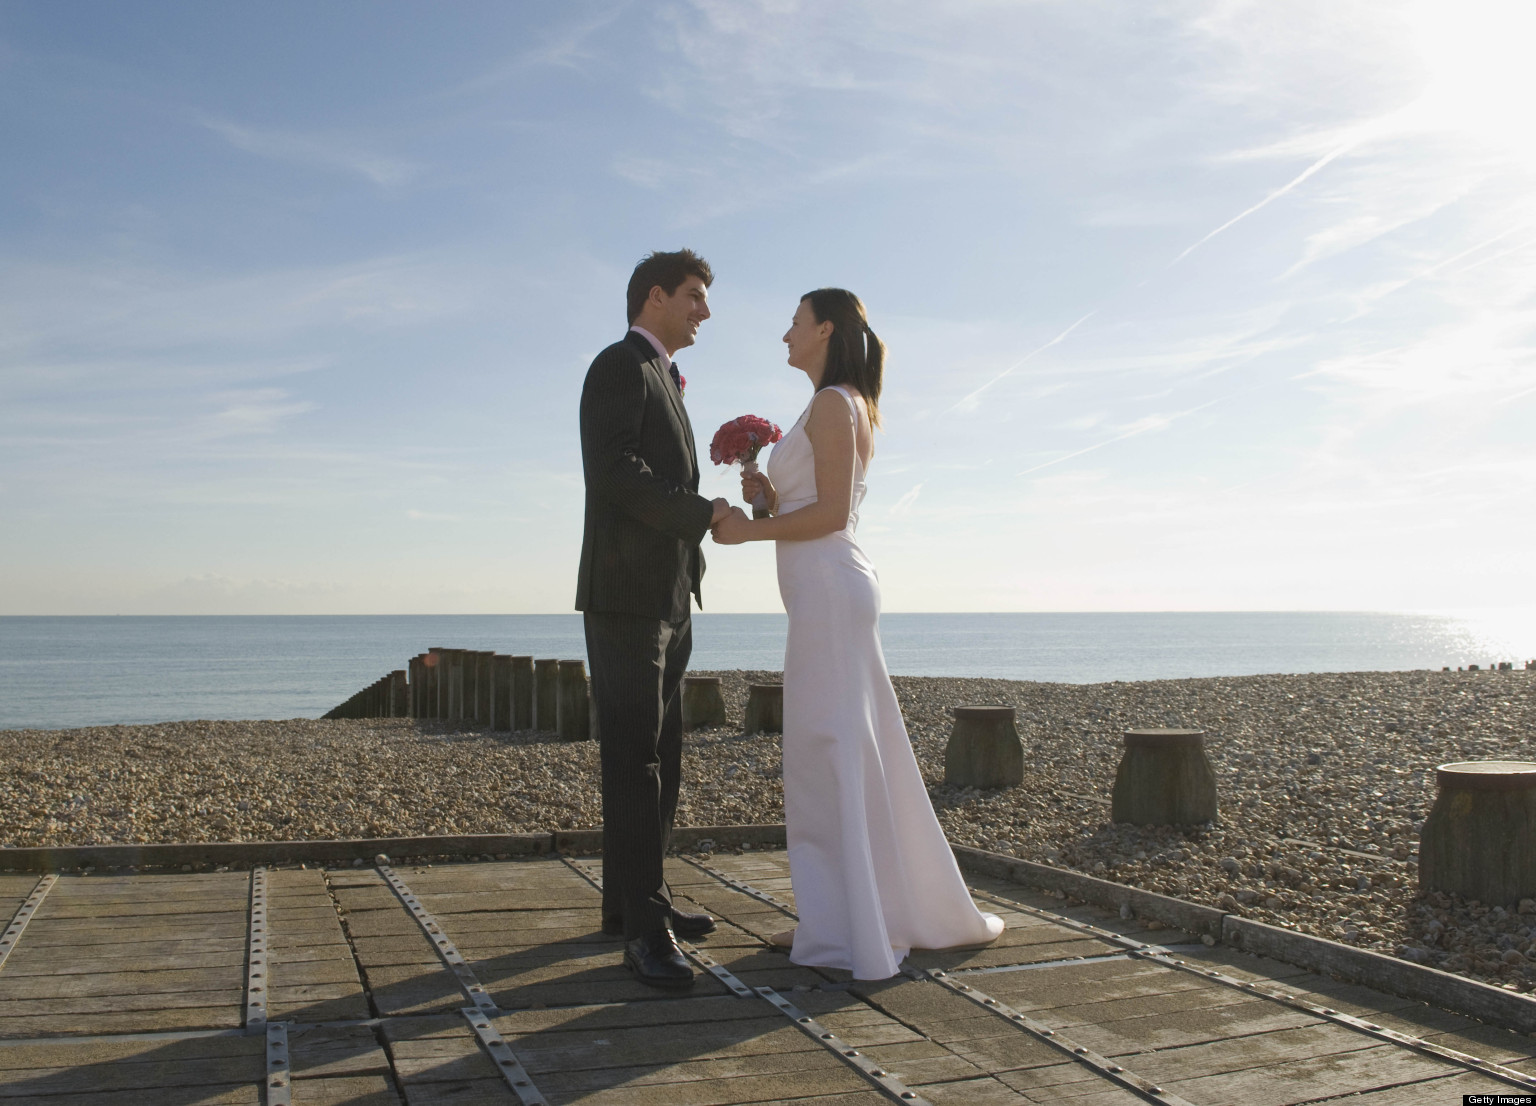 Jedi Wedding Fears Surface Amid Humanist Ceremony